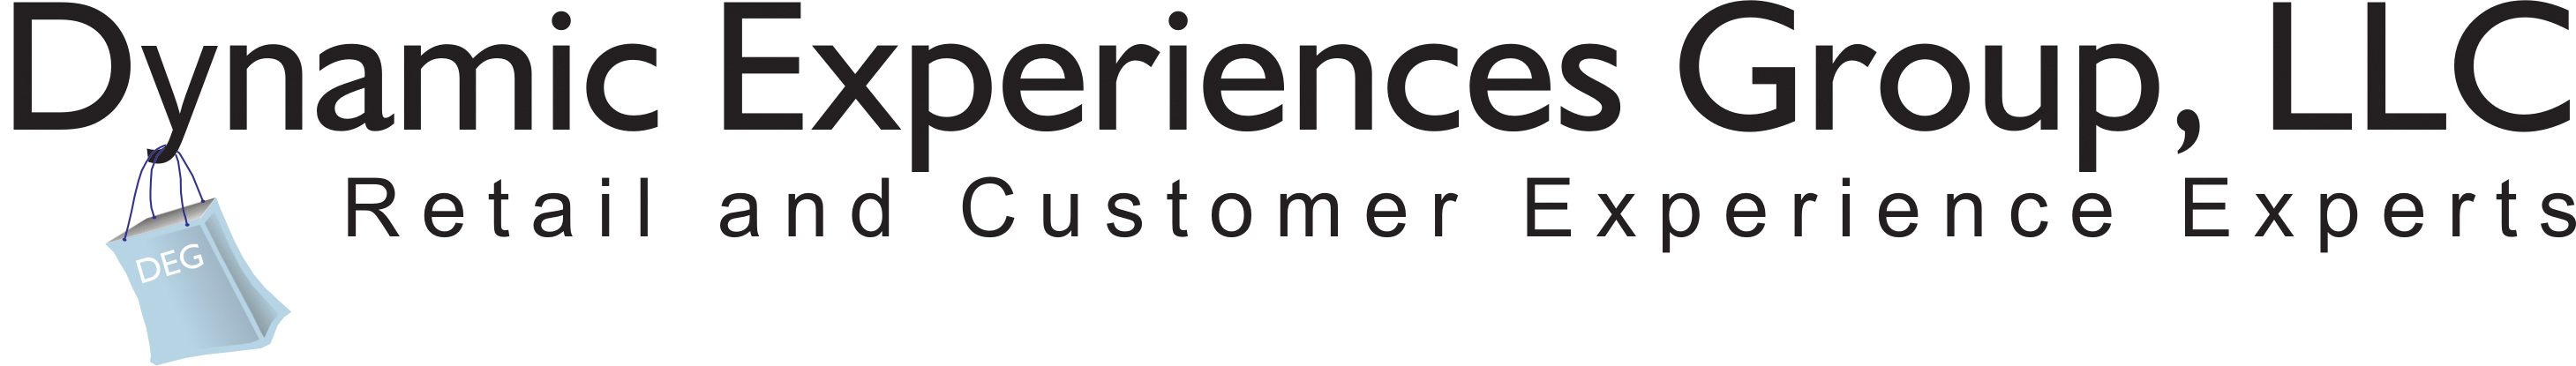 dynamic-experiences-group-logo